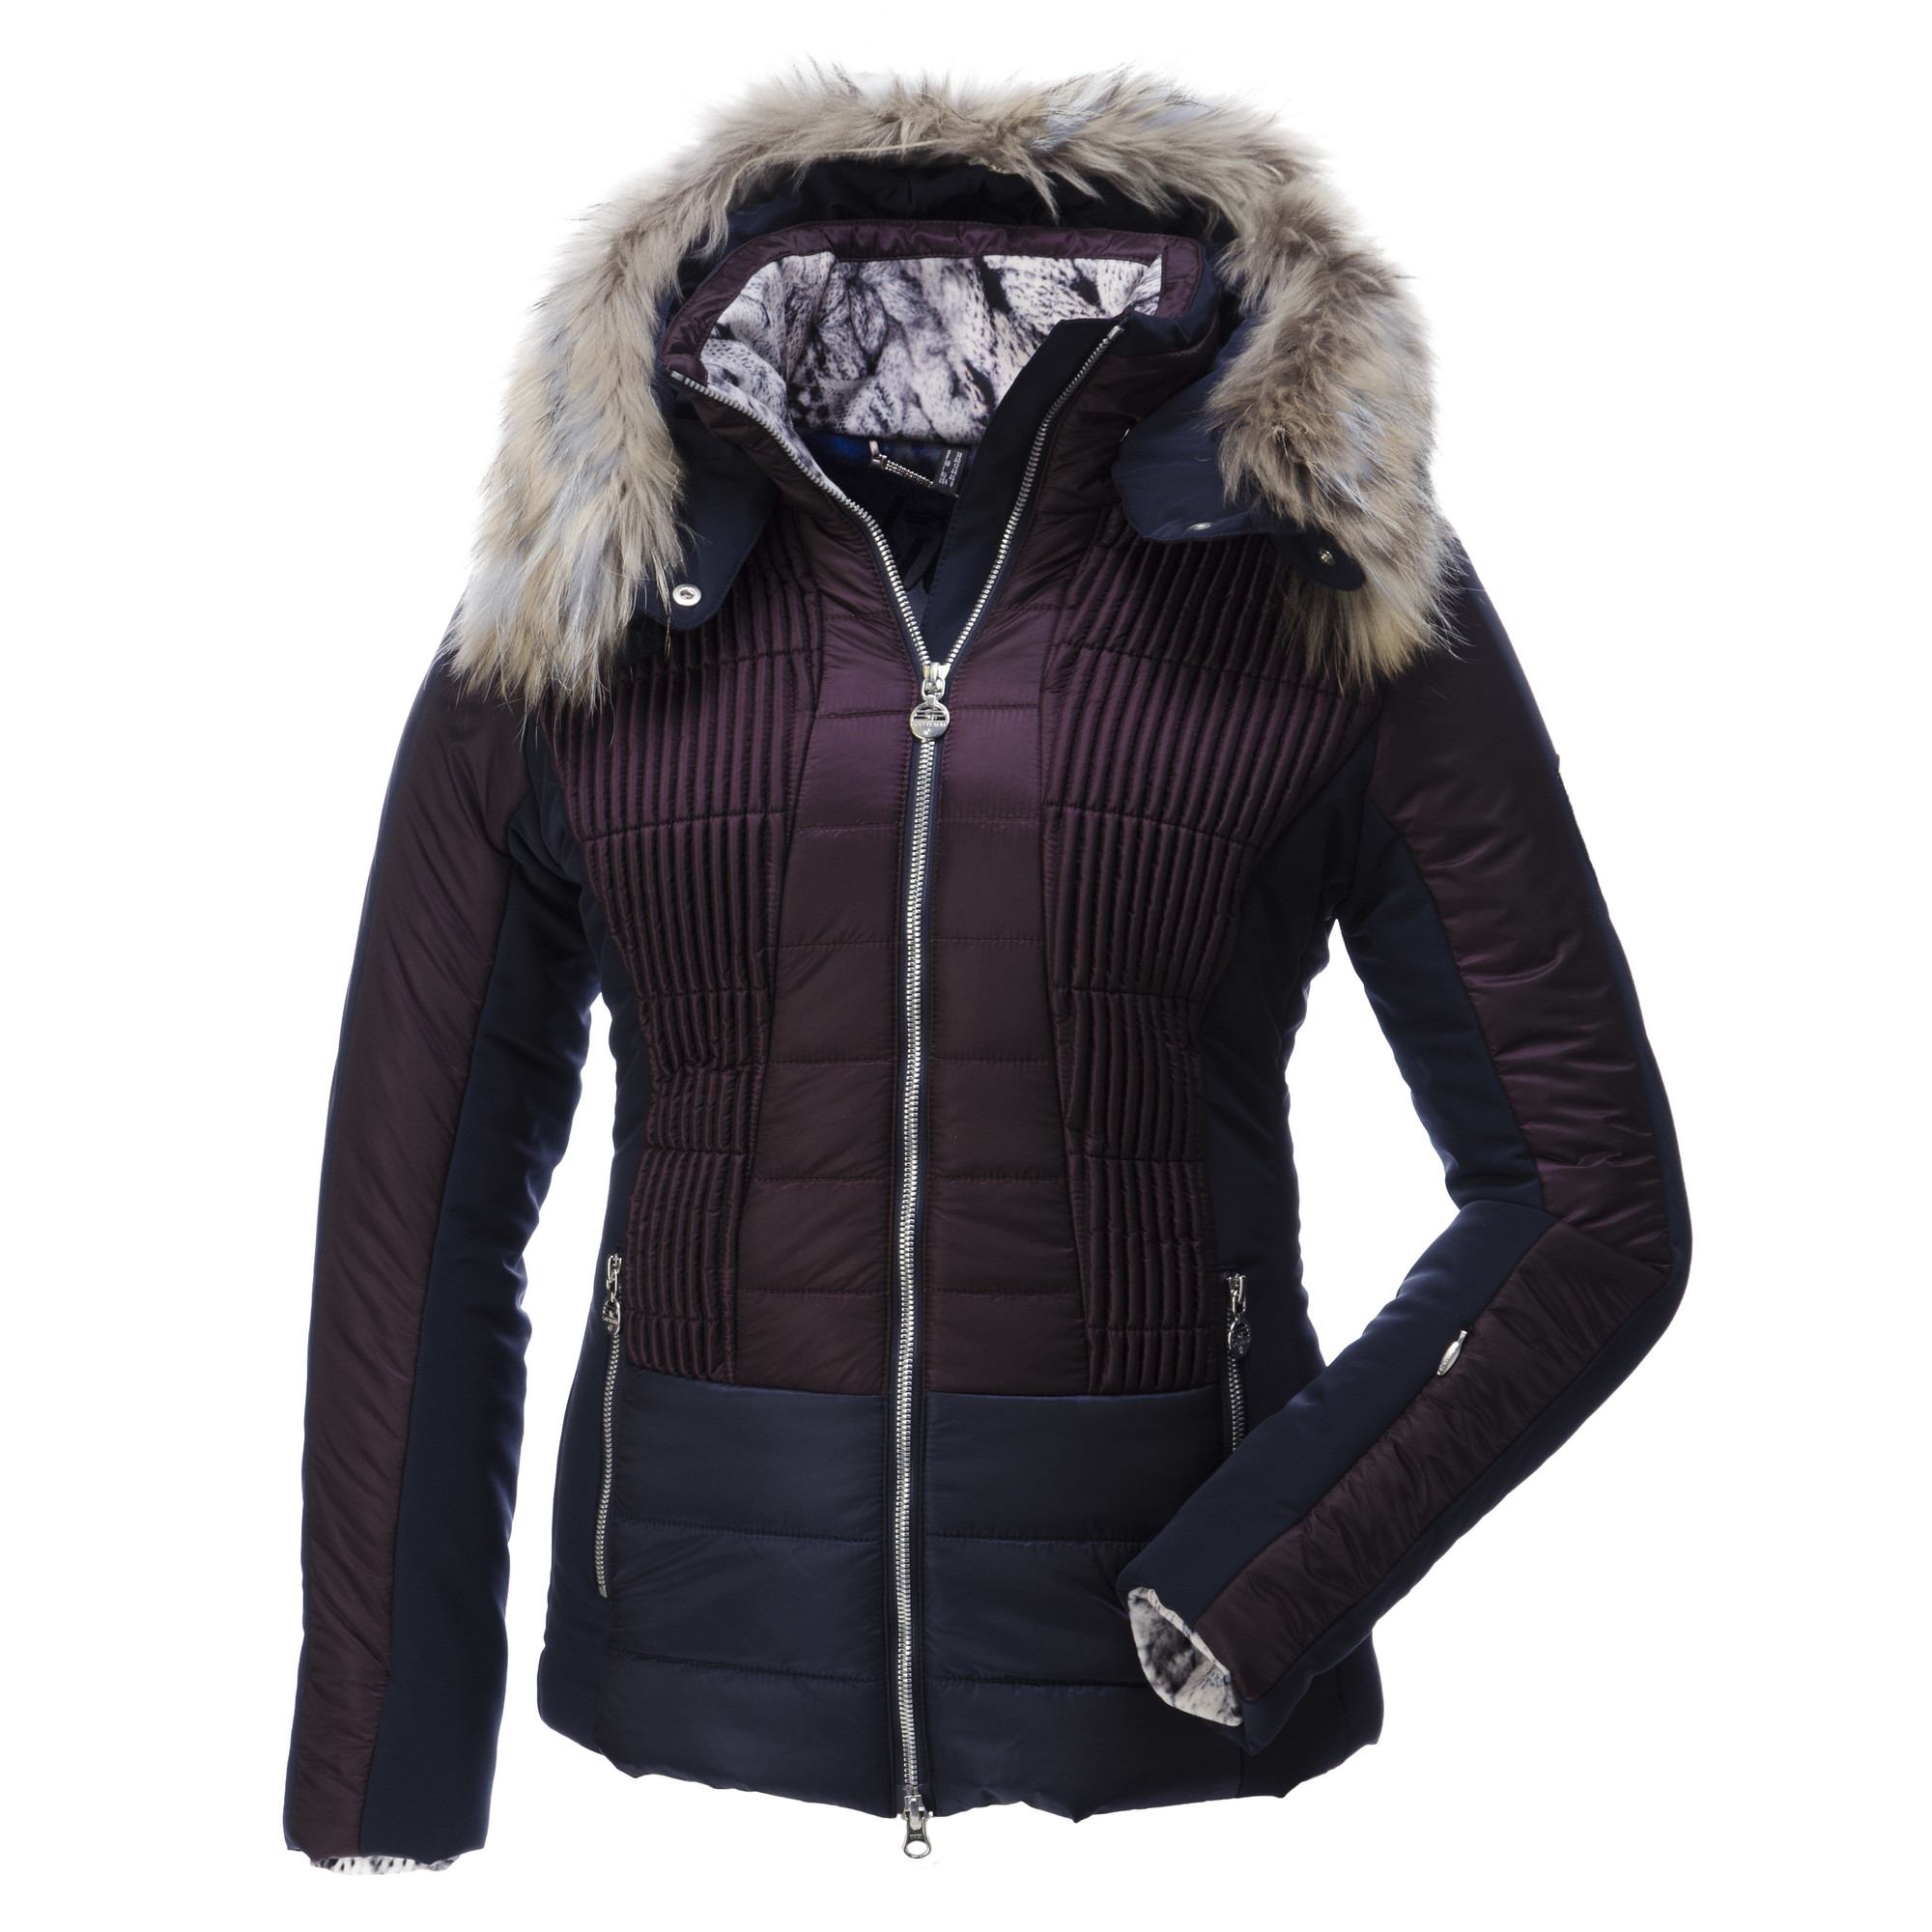 sportalm kitzb hel dushin ski jacket woman purple. Black Bedroom Furniture Sets. Home Design Ideas